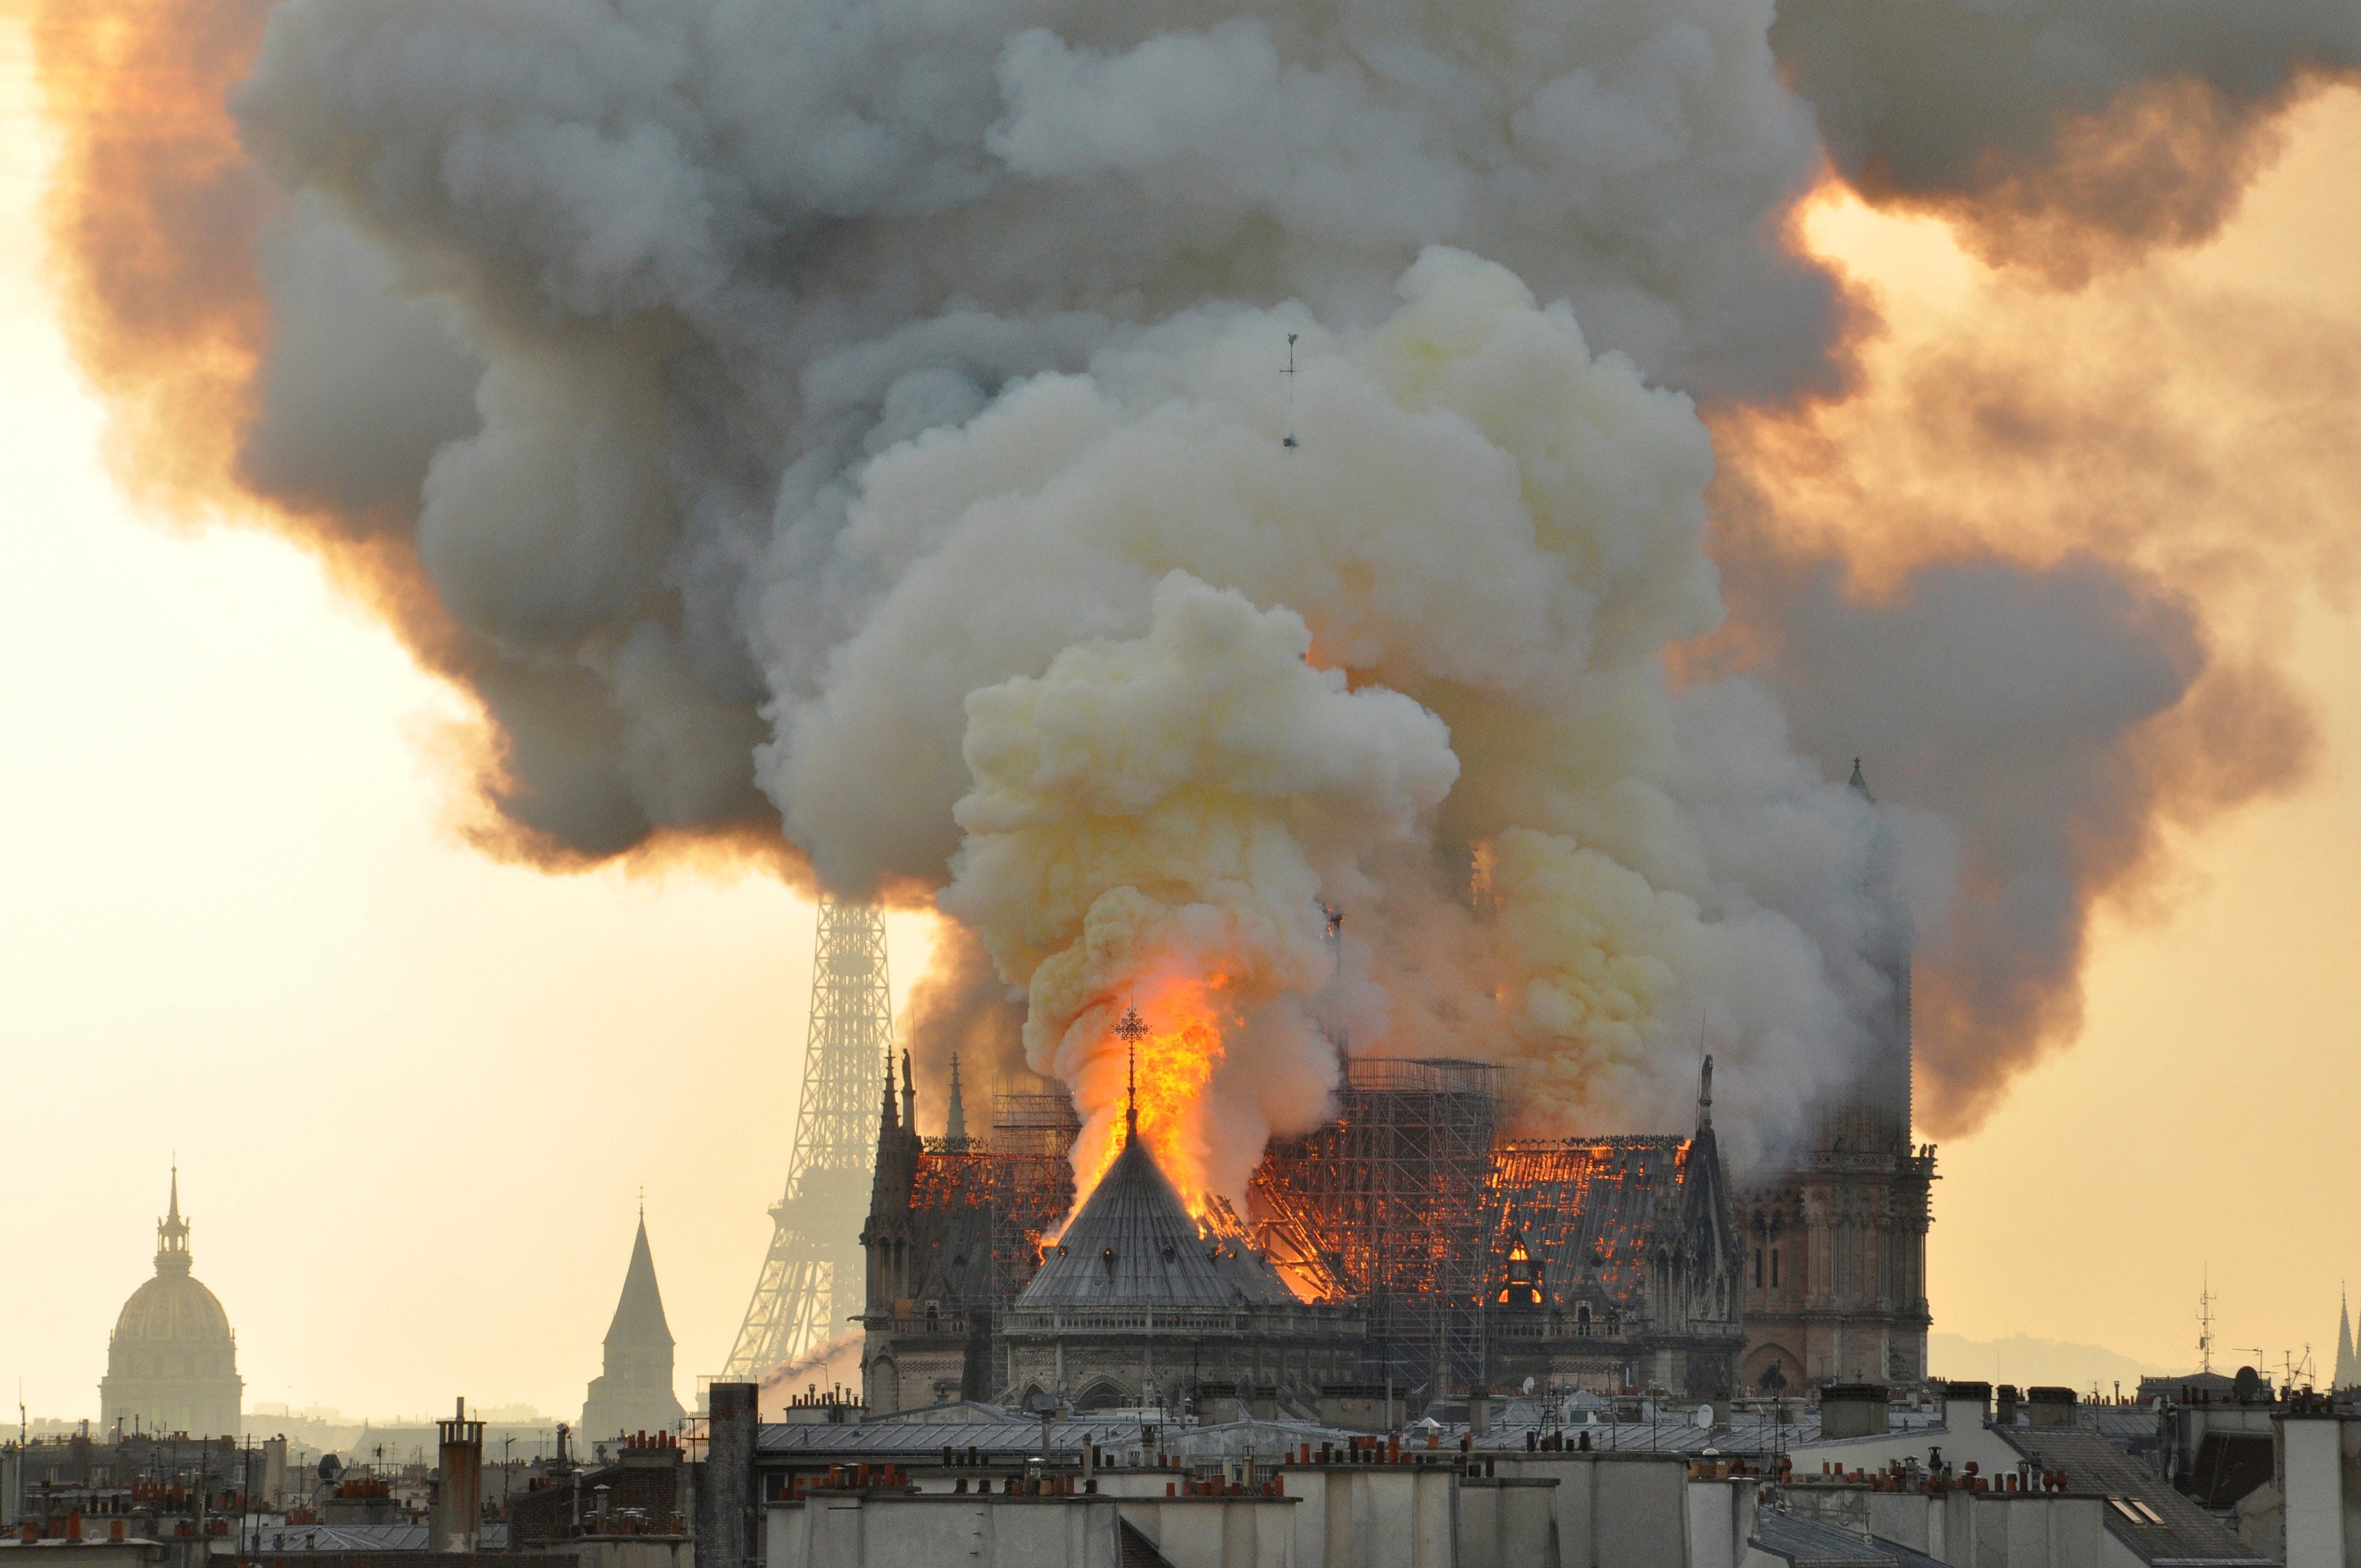 'Raining fire': Firsthand accounts from the Notre Dame Cathedral blaze